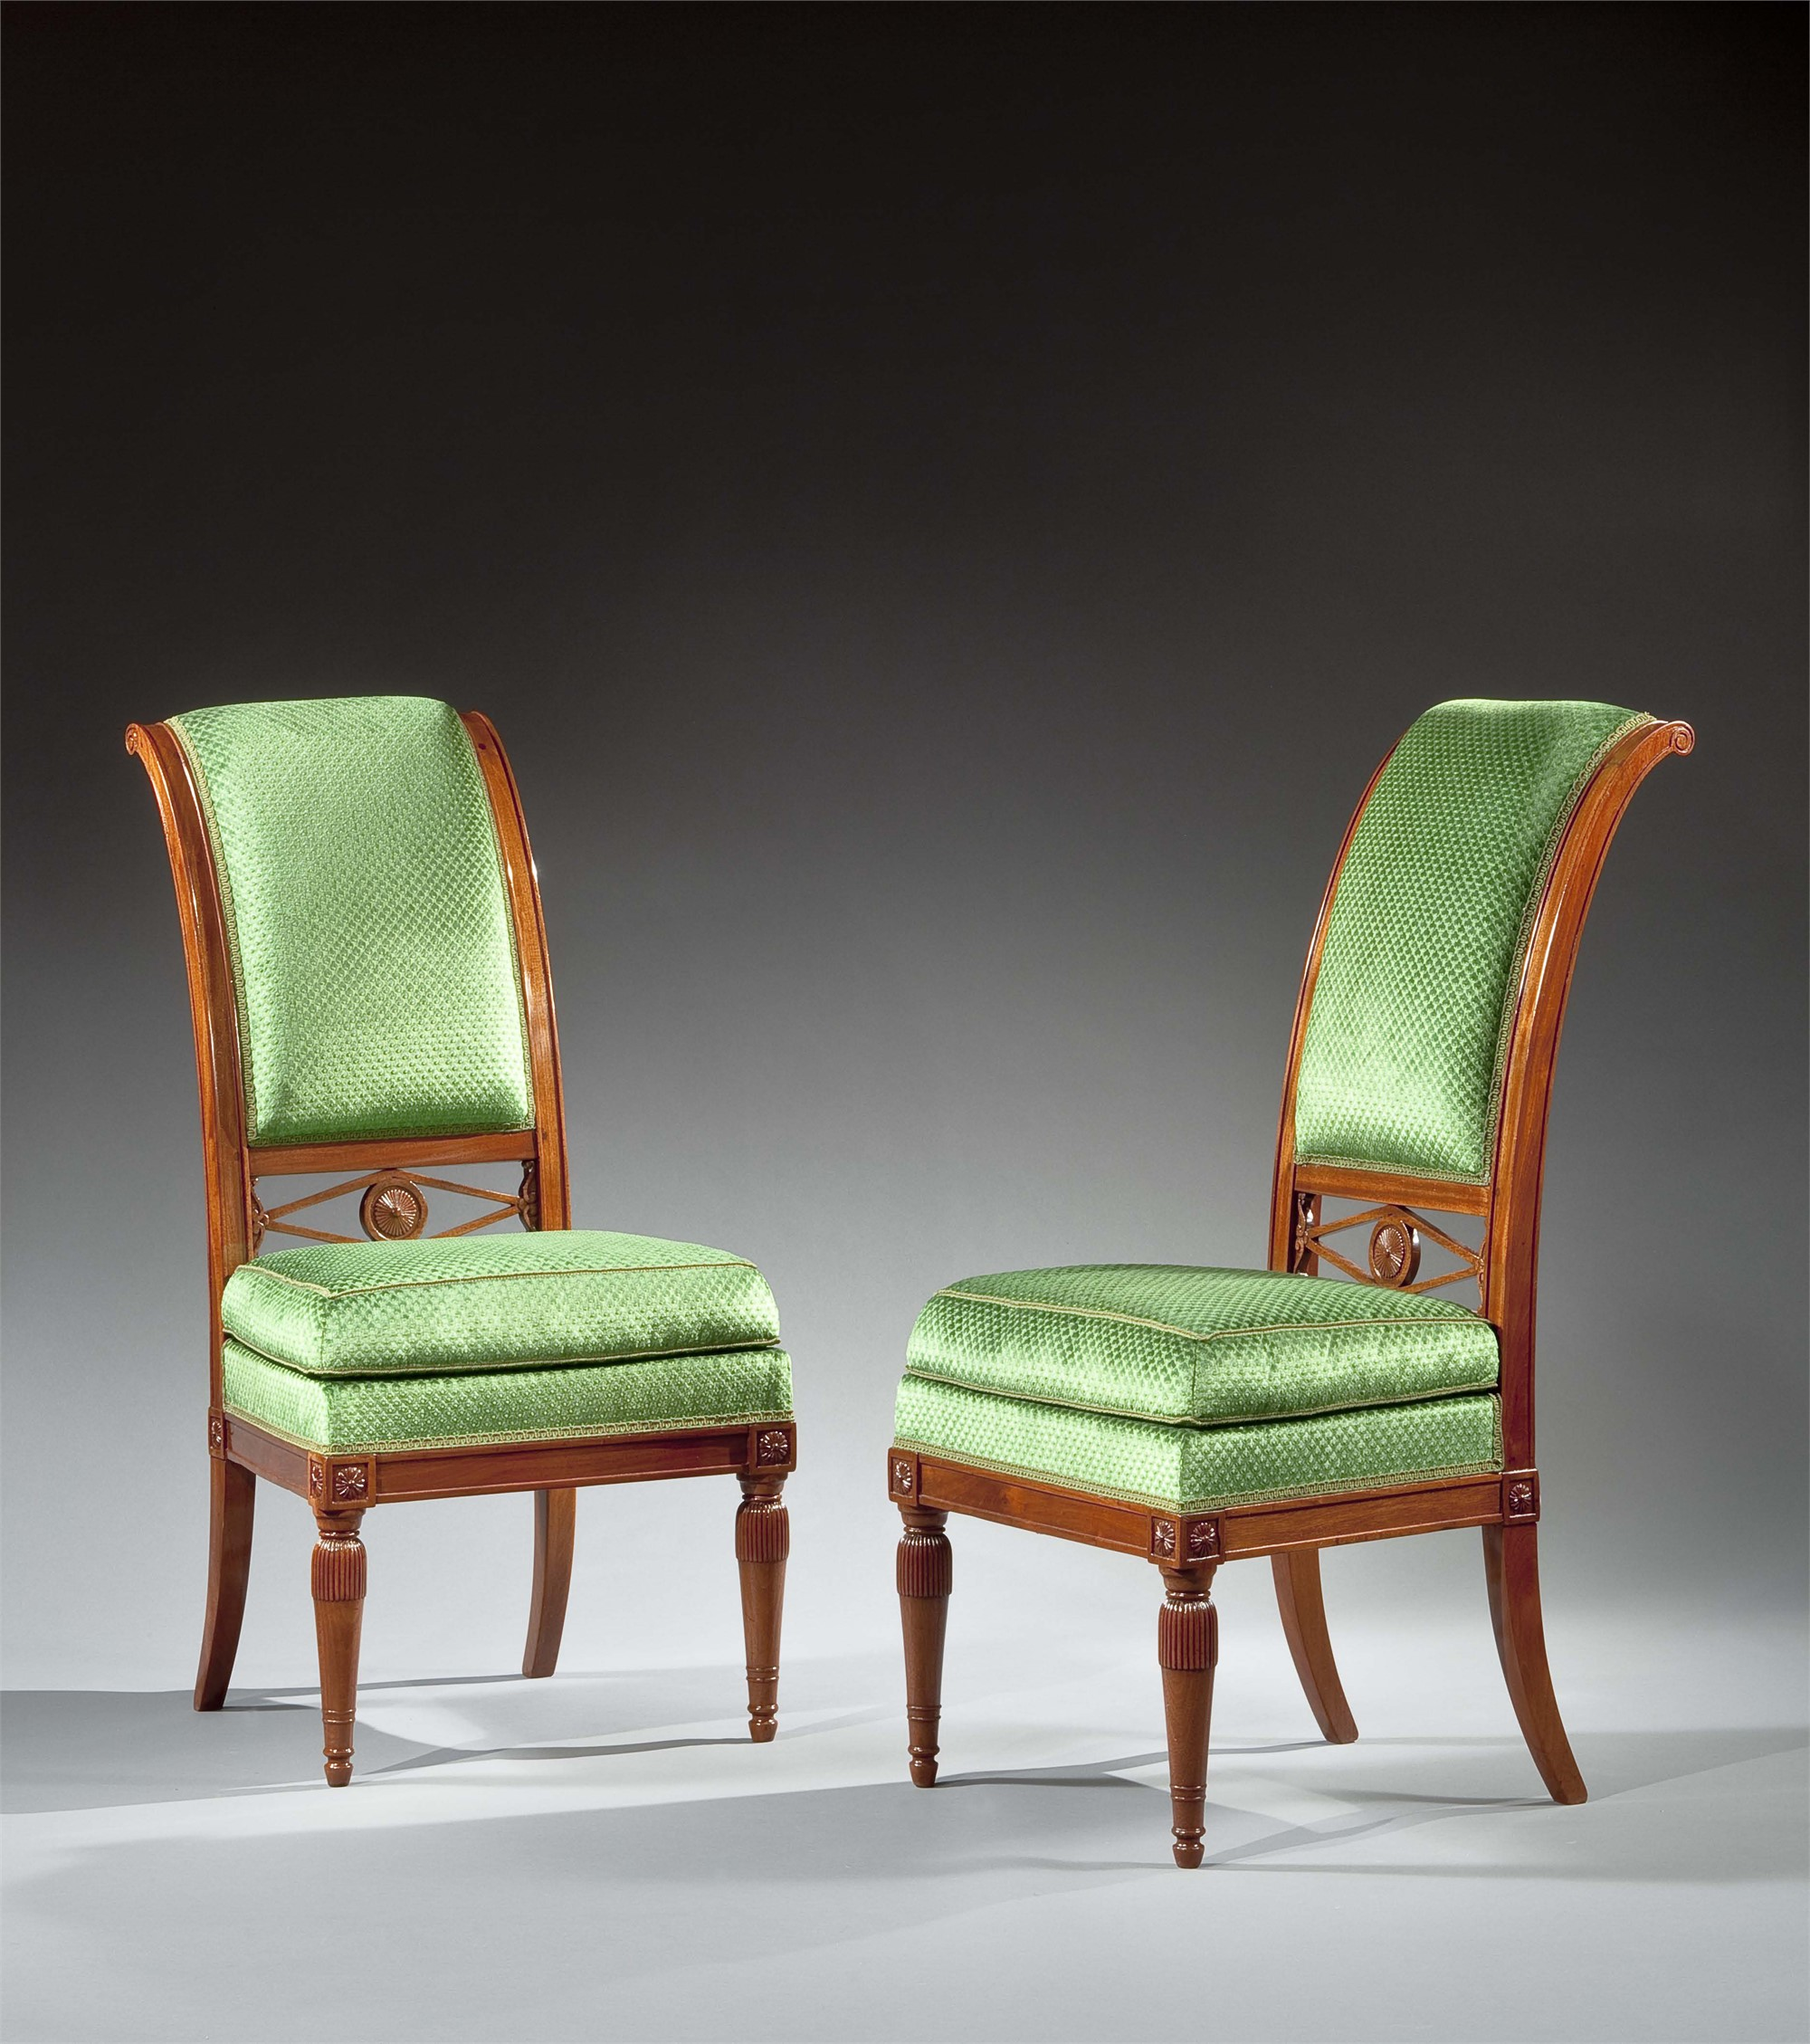 PAIR OF LOUIS XVI CHAIRS WITH CURVED AND FLUTED BACKS